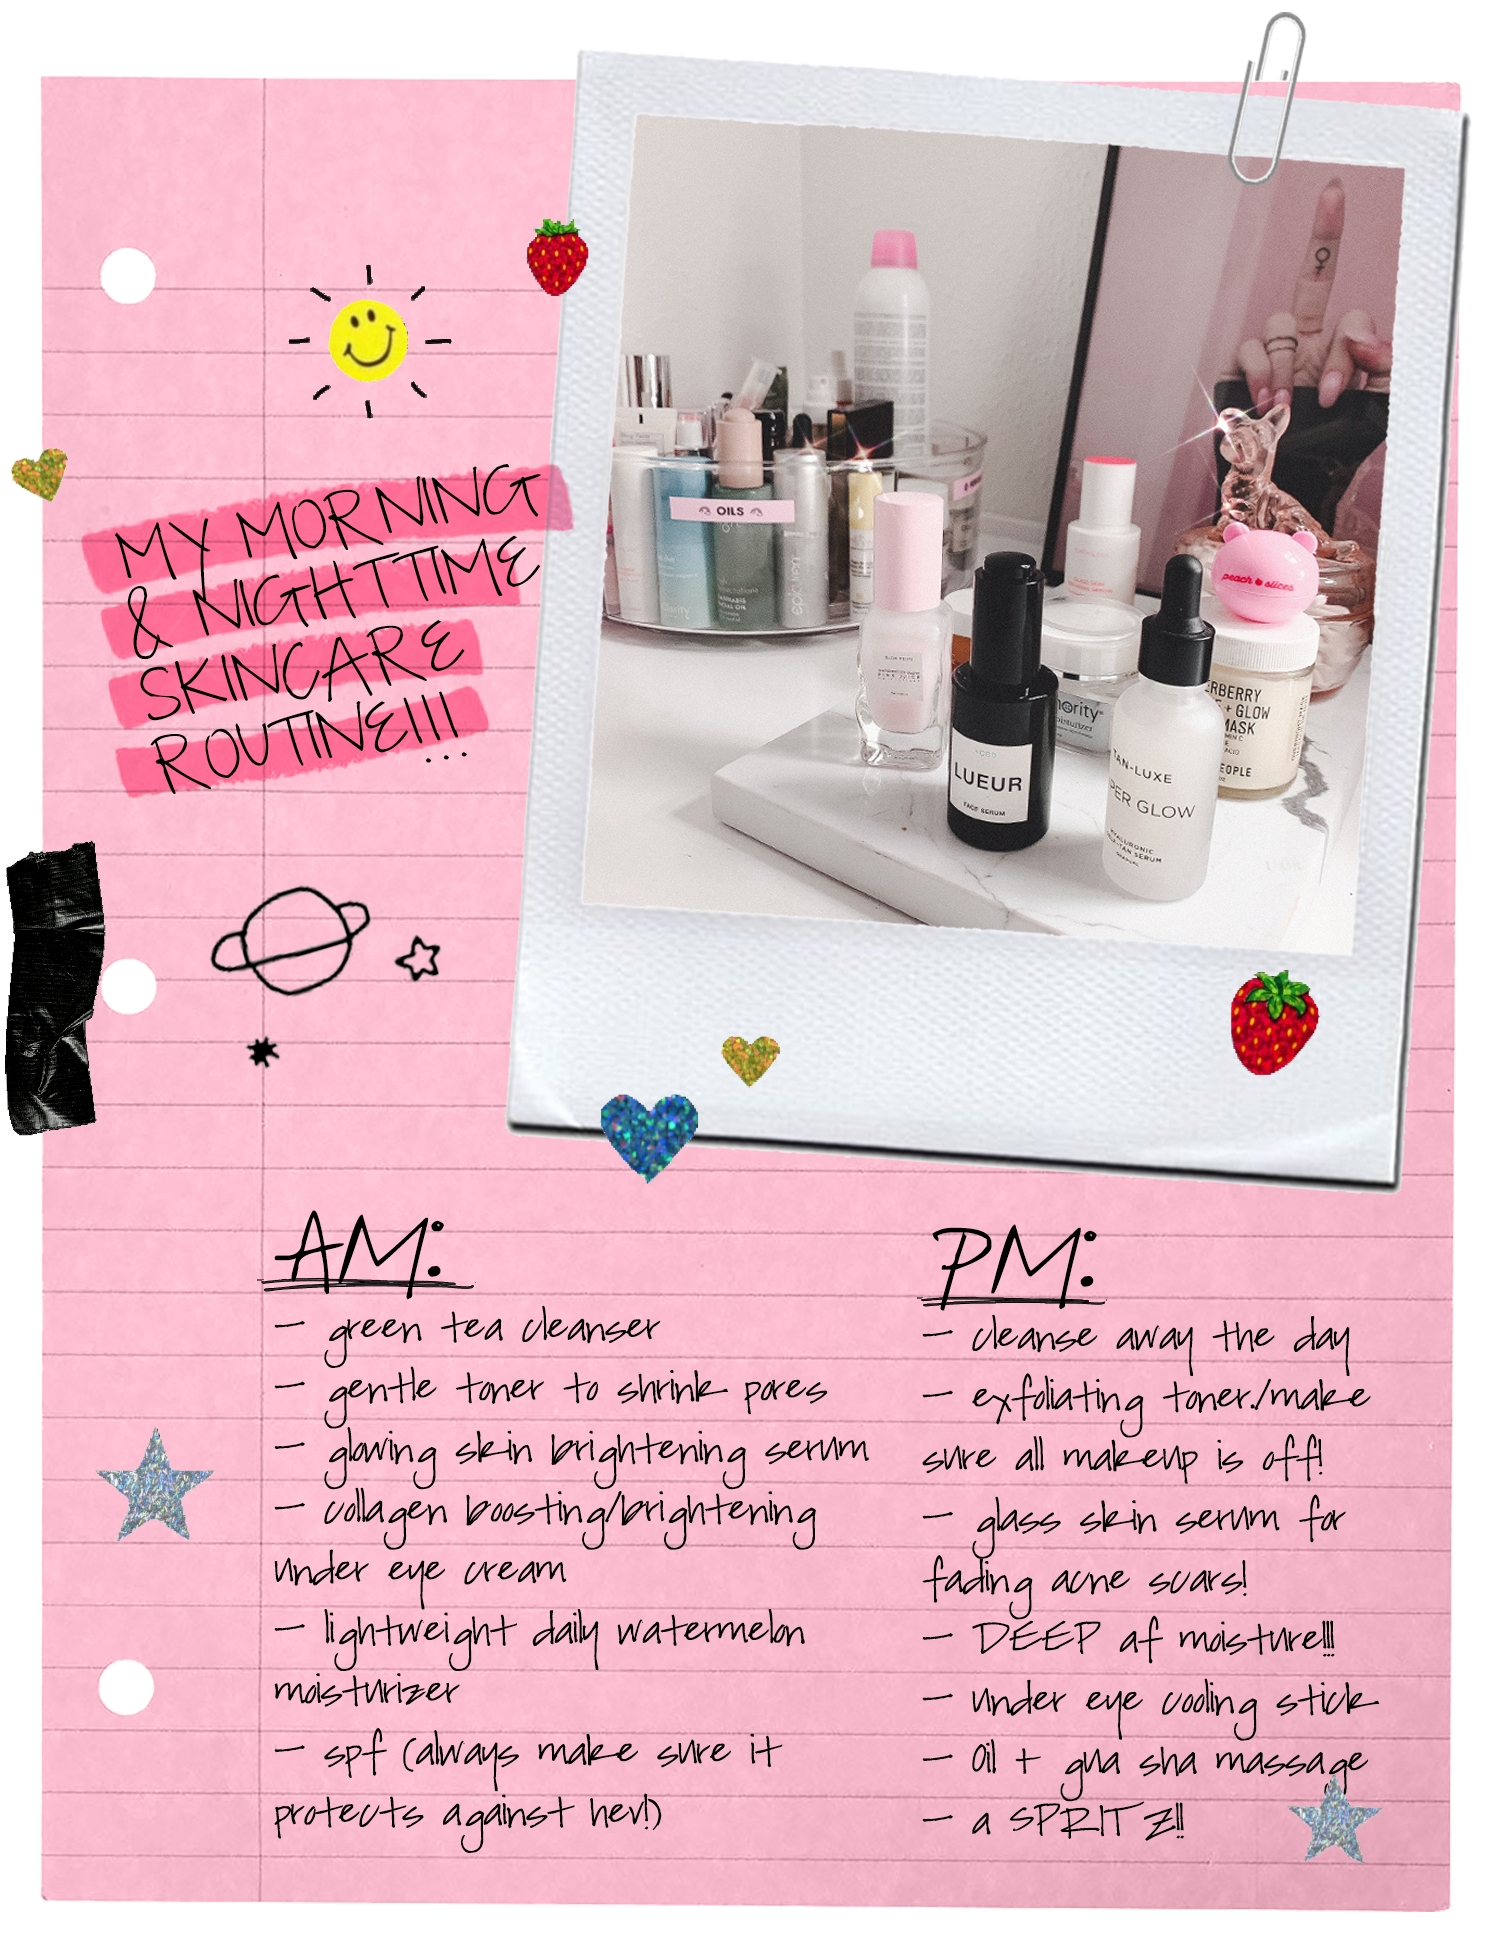 My *COMPLETE* Morning & Nighttime Skincare Routine for Glowing